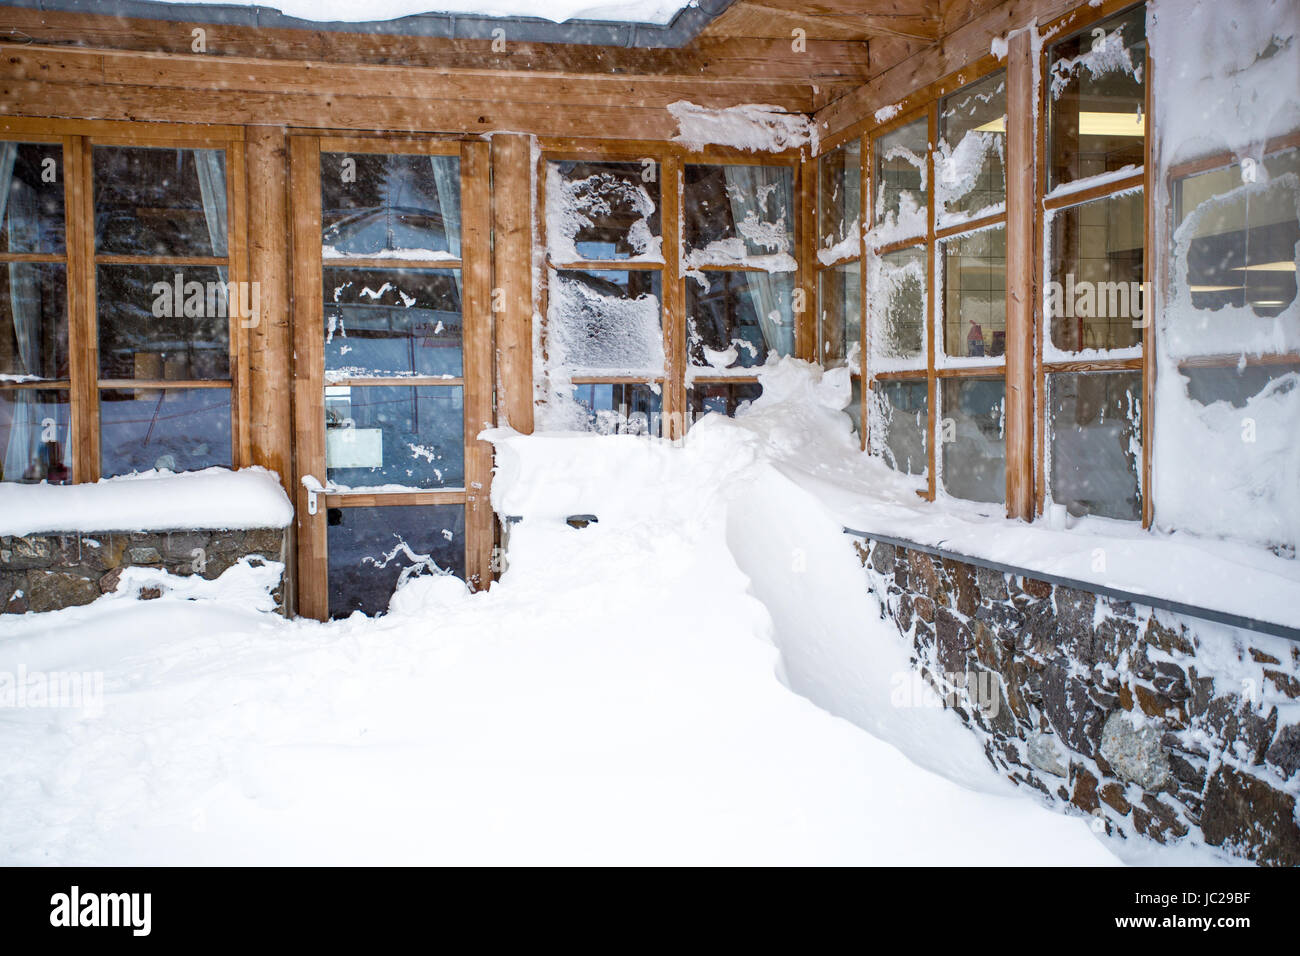 e18fa2048dc2 Classic Austrian wooden house with big windows covered by snow at snowstorm